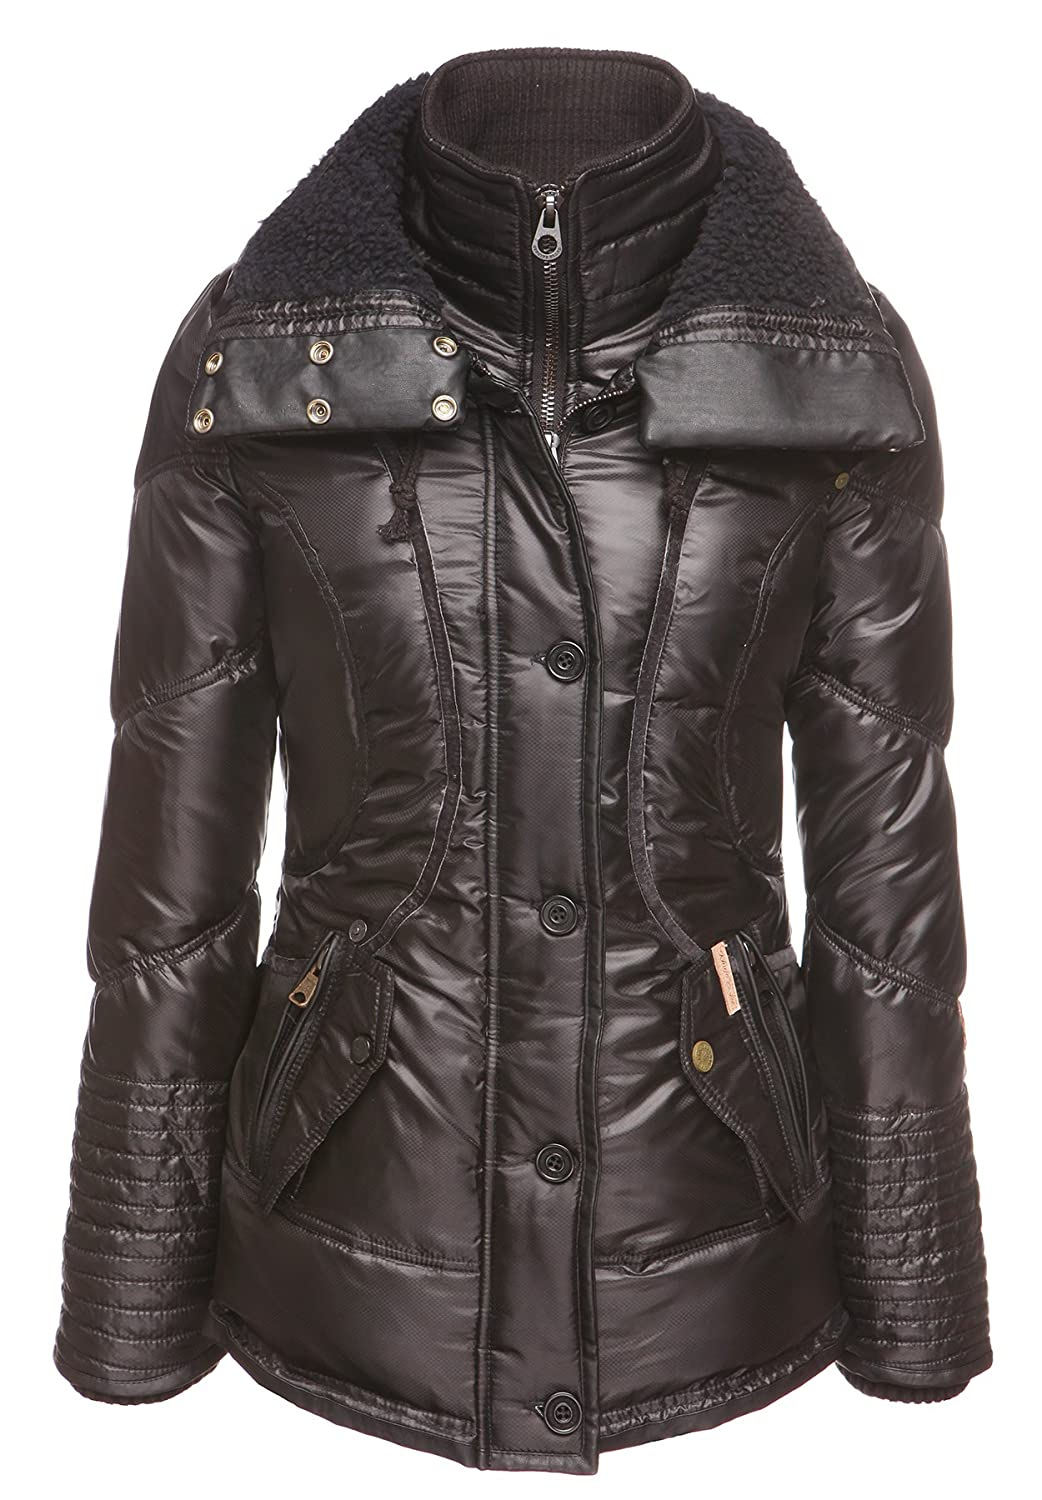 khujo Damen Jacke GUNNEL WITH INNER JACKET 1208JK153J_P1 kaufen